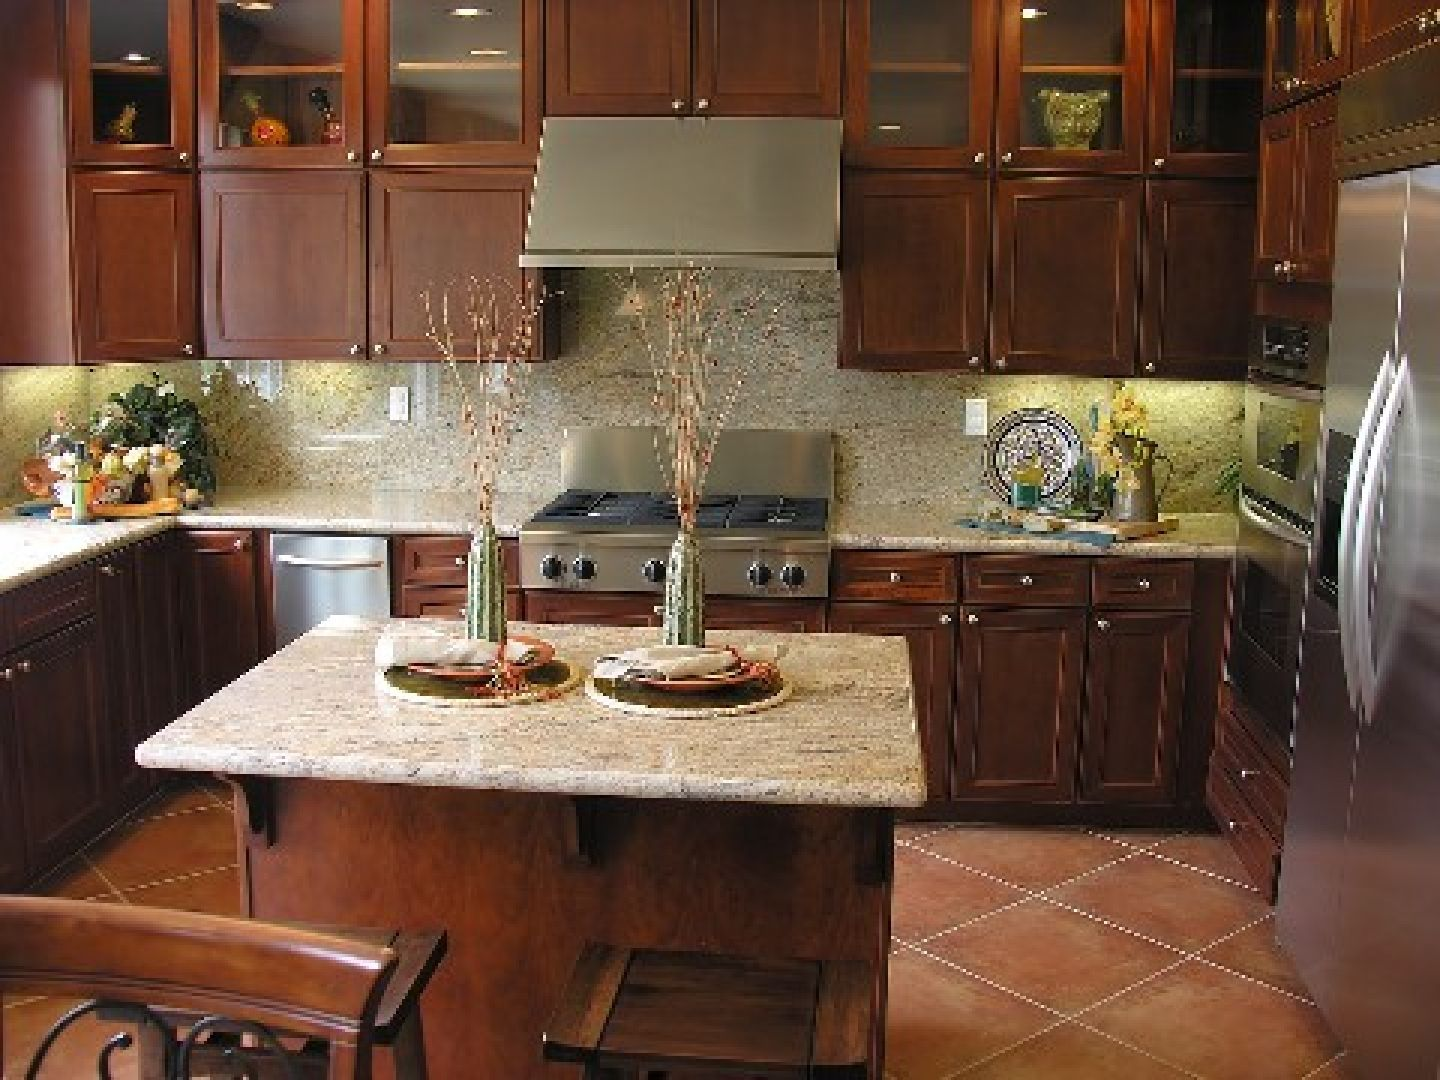 6 Amazing Kitchen Backsplash Types And A Few Ideas  The Kitchen Endearing Design My Kitchen Home Depot Inspiration Design